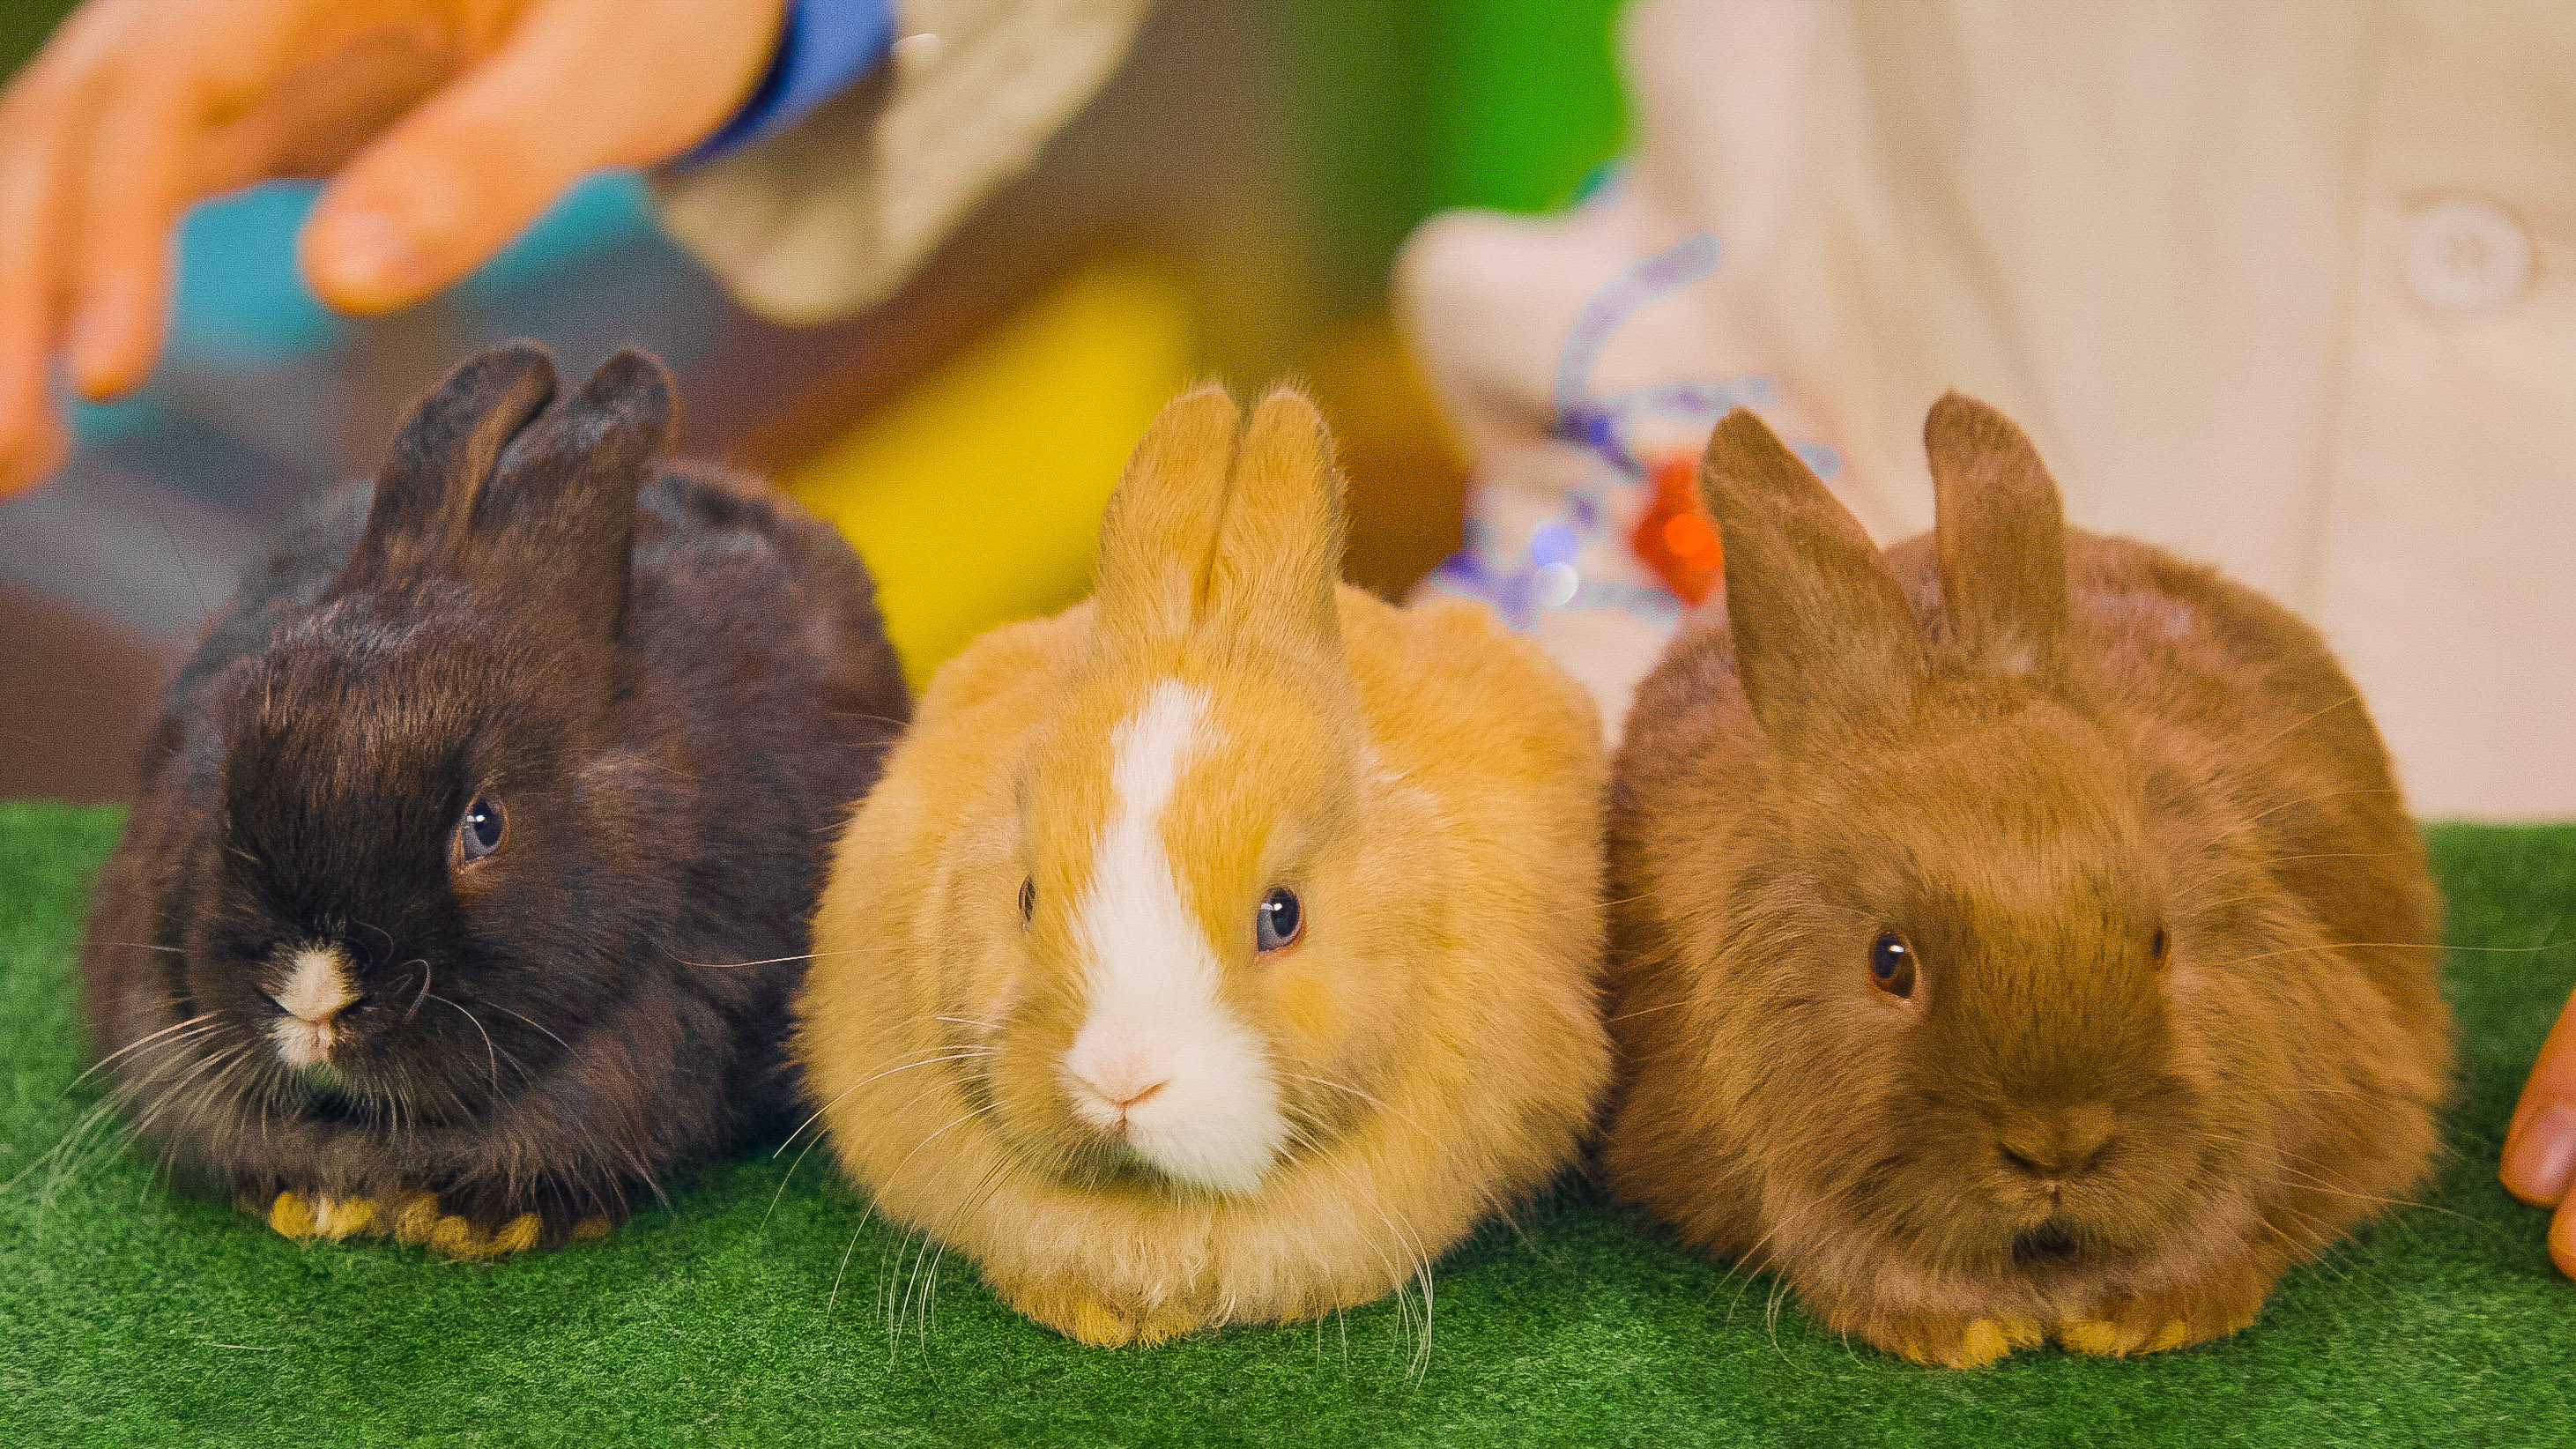 comparing the inherited traits of three bunny rabbits of different color